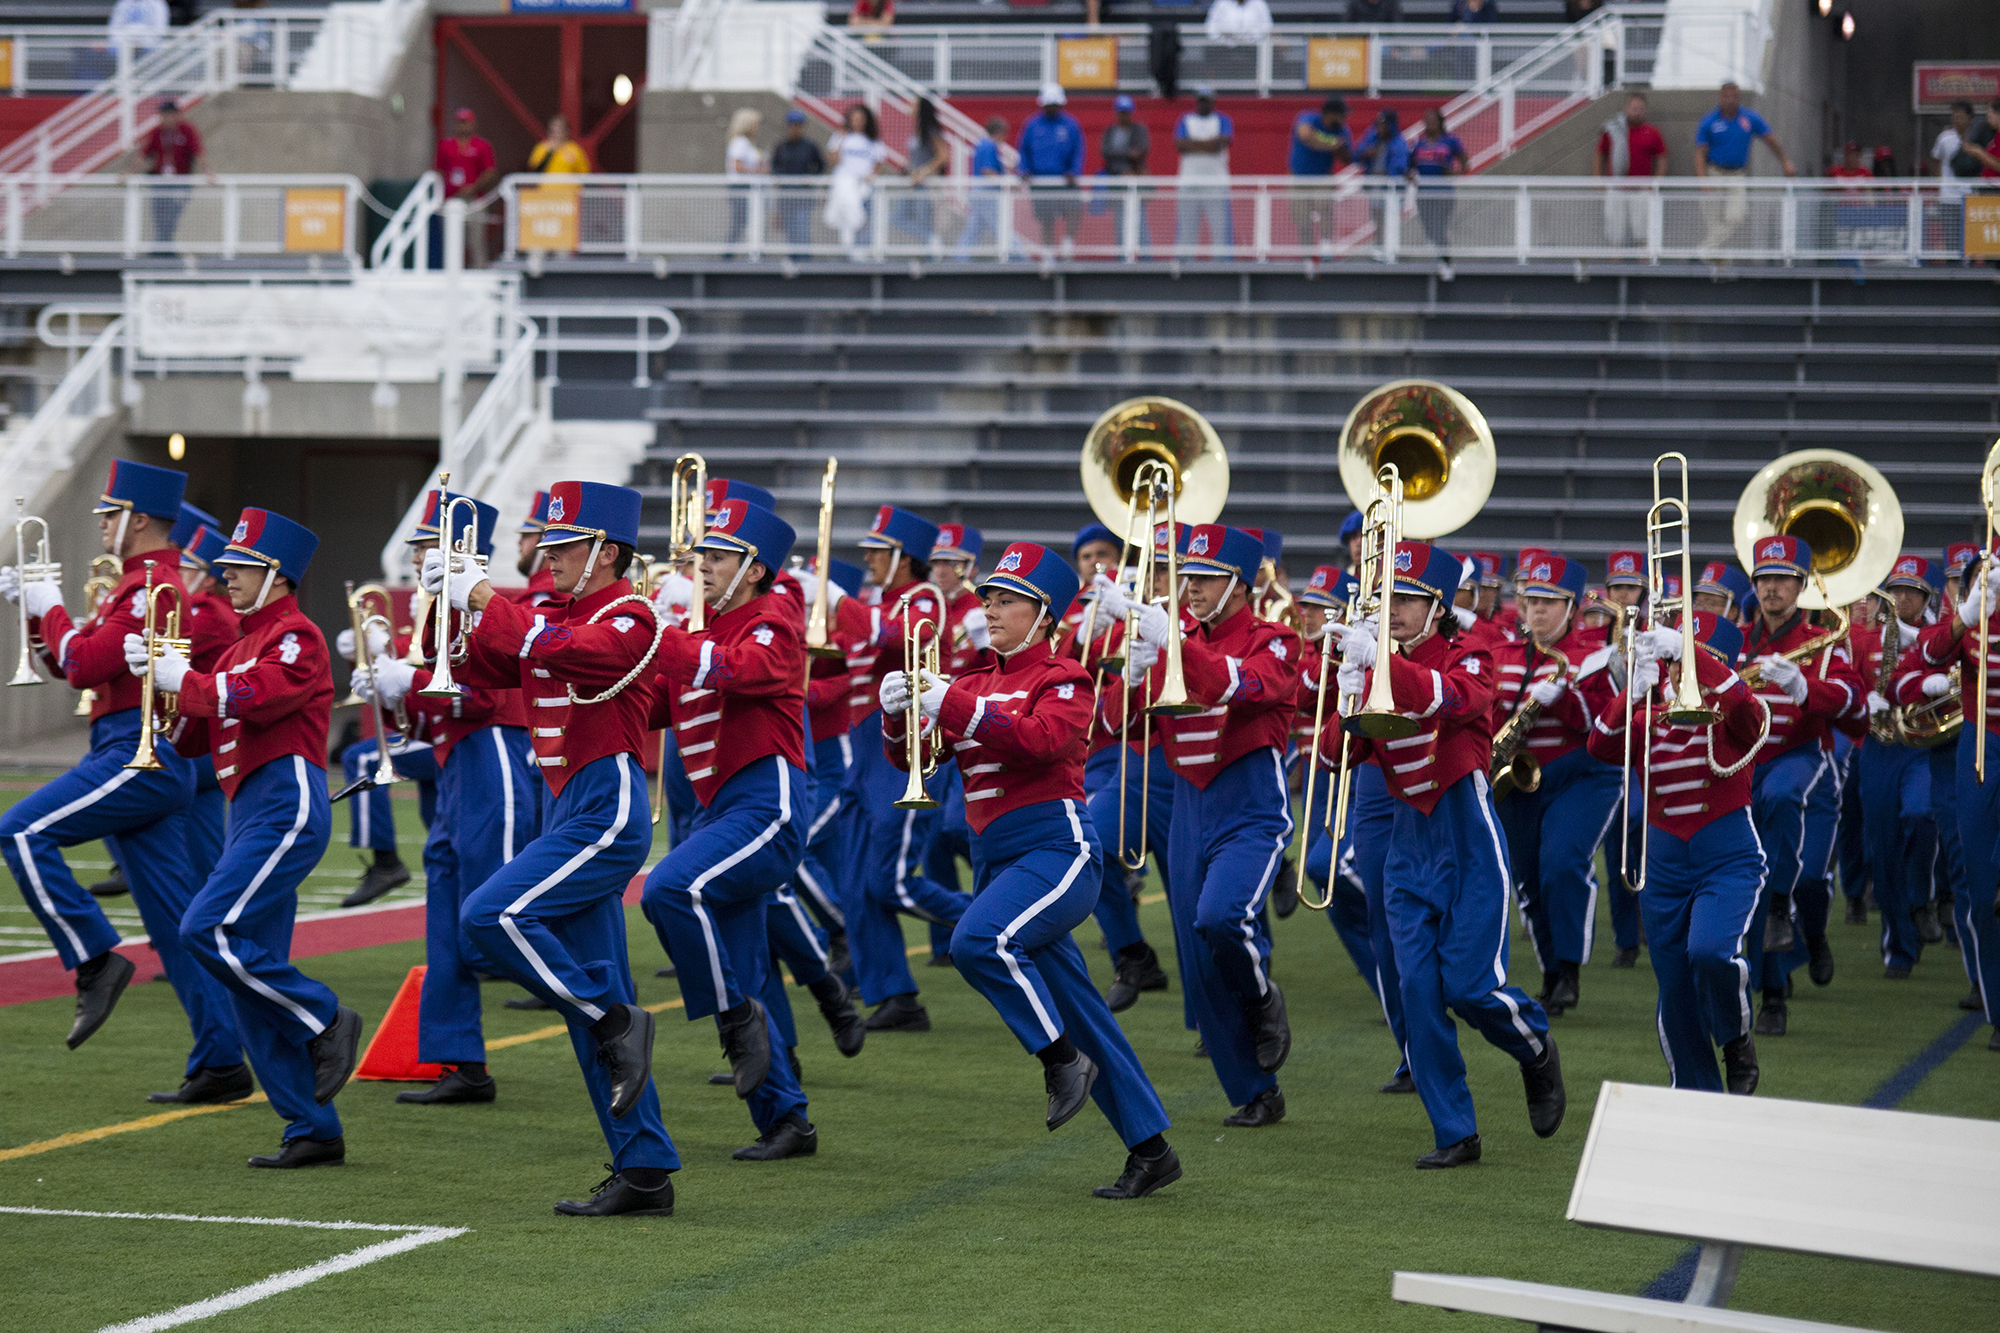 The Spirit of Stony Brook performing the Stony Brook Shuffle at the football game versus Central Connecticut on Saturday. CHRISTOPHER CAMERON/THE STATESMAN